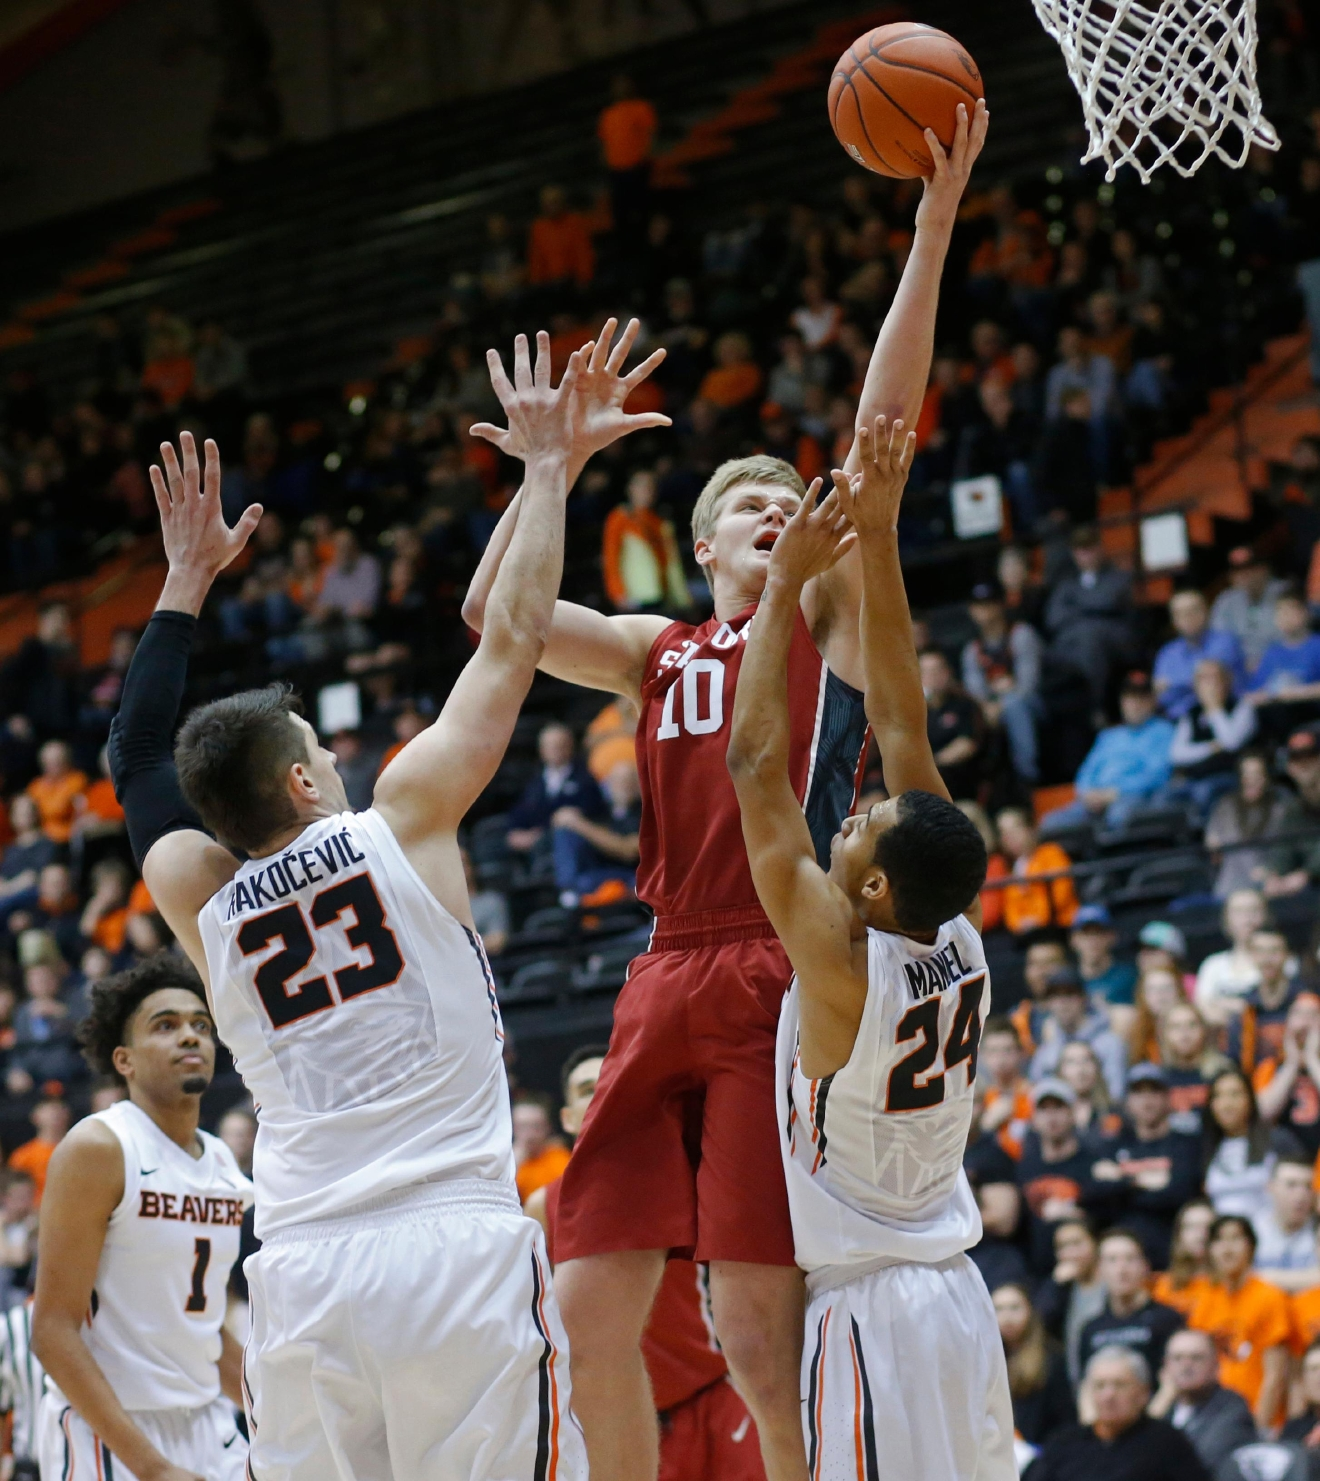 Stanford's Michael Humphrey (10) shoots over Oregon State's Gligorije Rakocevic (23) and Kendal Manuel (24) during the first half of an NCAA college basketball game in Corvallis, Ore., Thursday, Jan. 19, 2017. (AP Photo/Timothy J. Gonzalez)